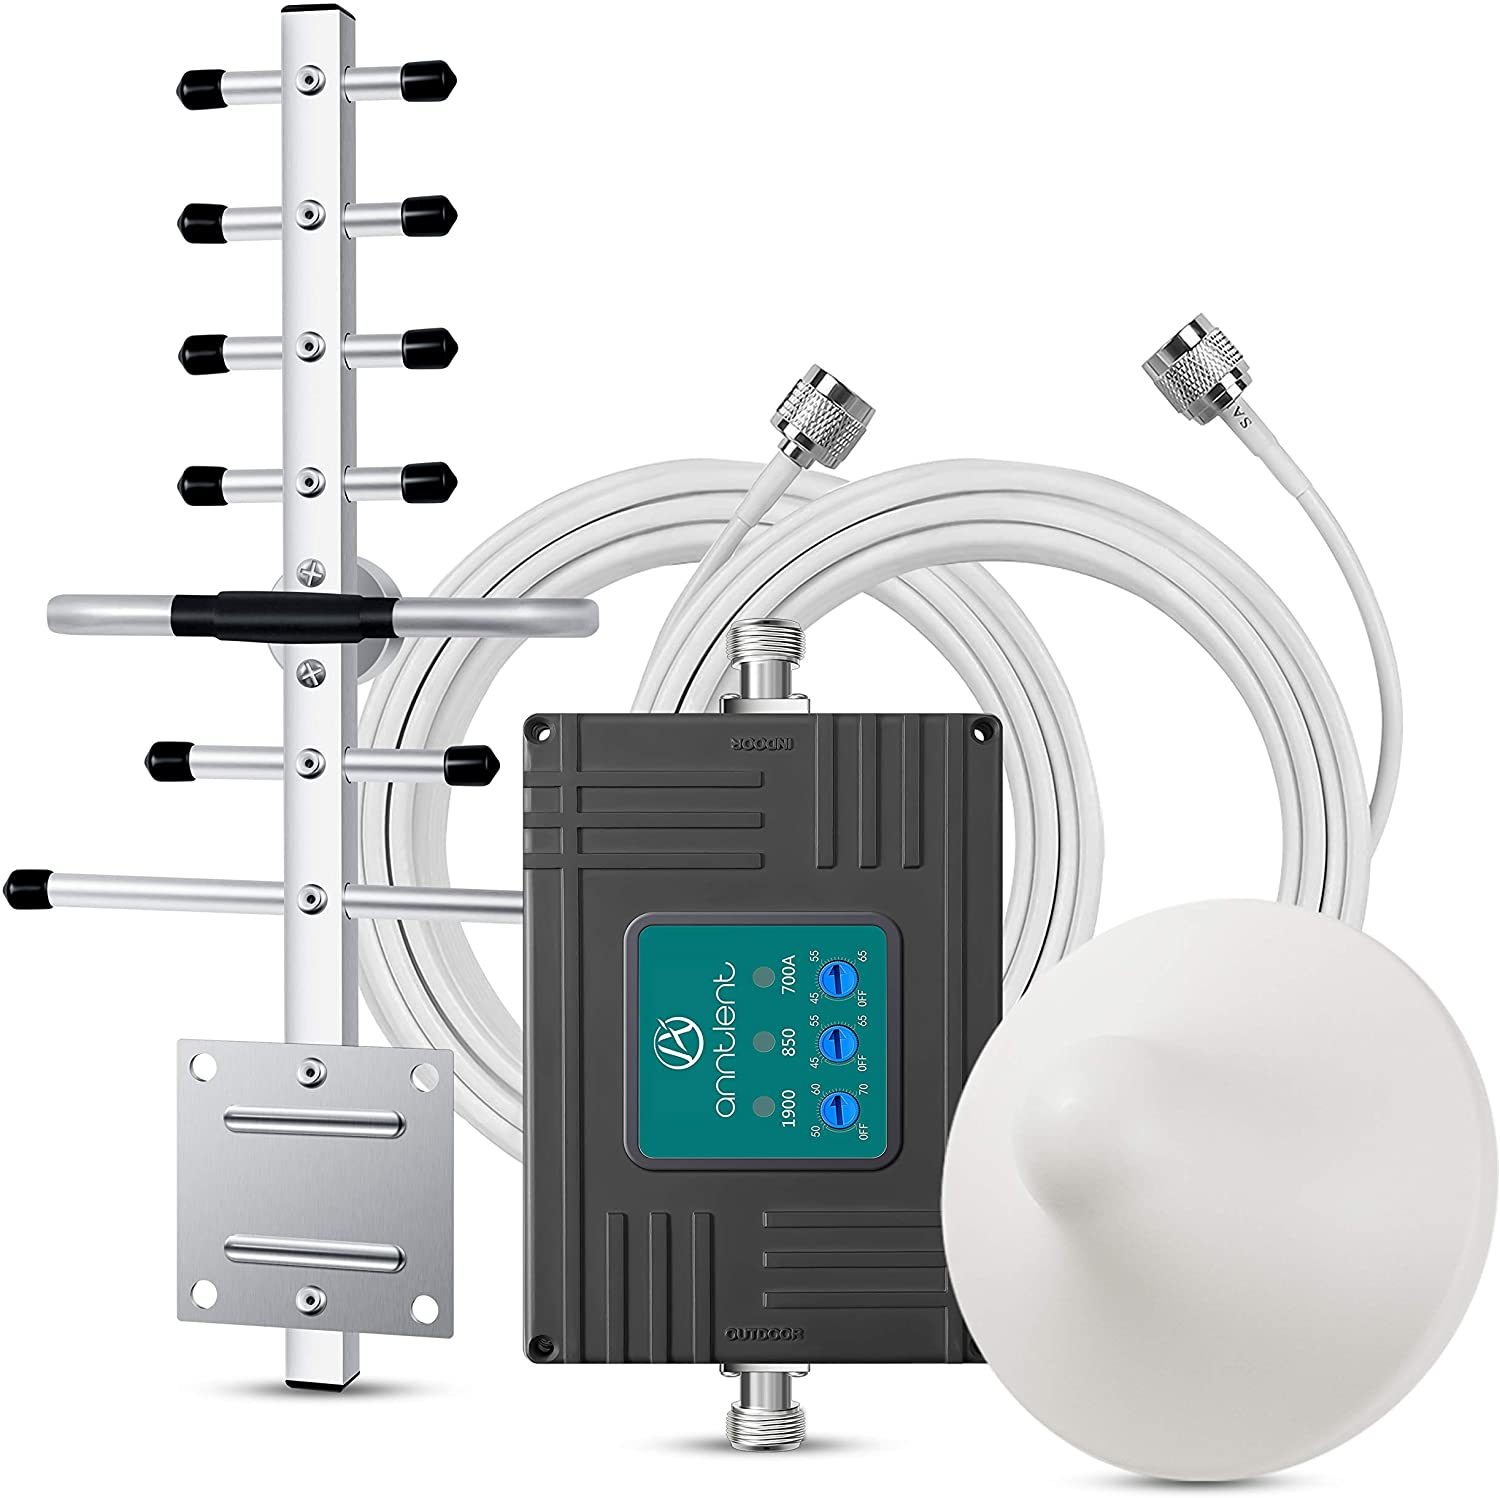 Band 5/2/12/17 Cell Phone Booster Boosts Voice 4G LTE Data For Home Office -850/1900/700MHz Cellular Signal Booster Repeater Kit